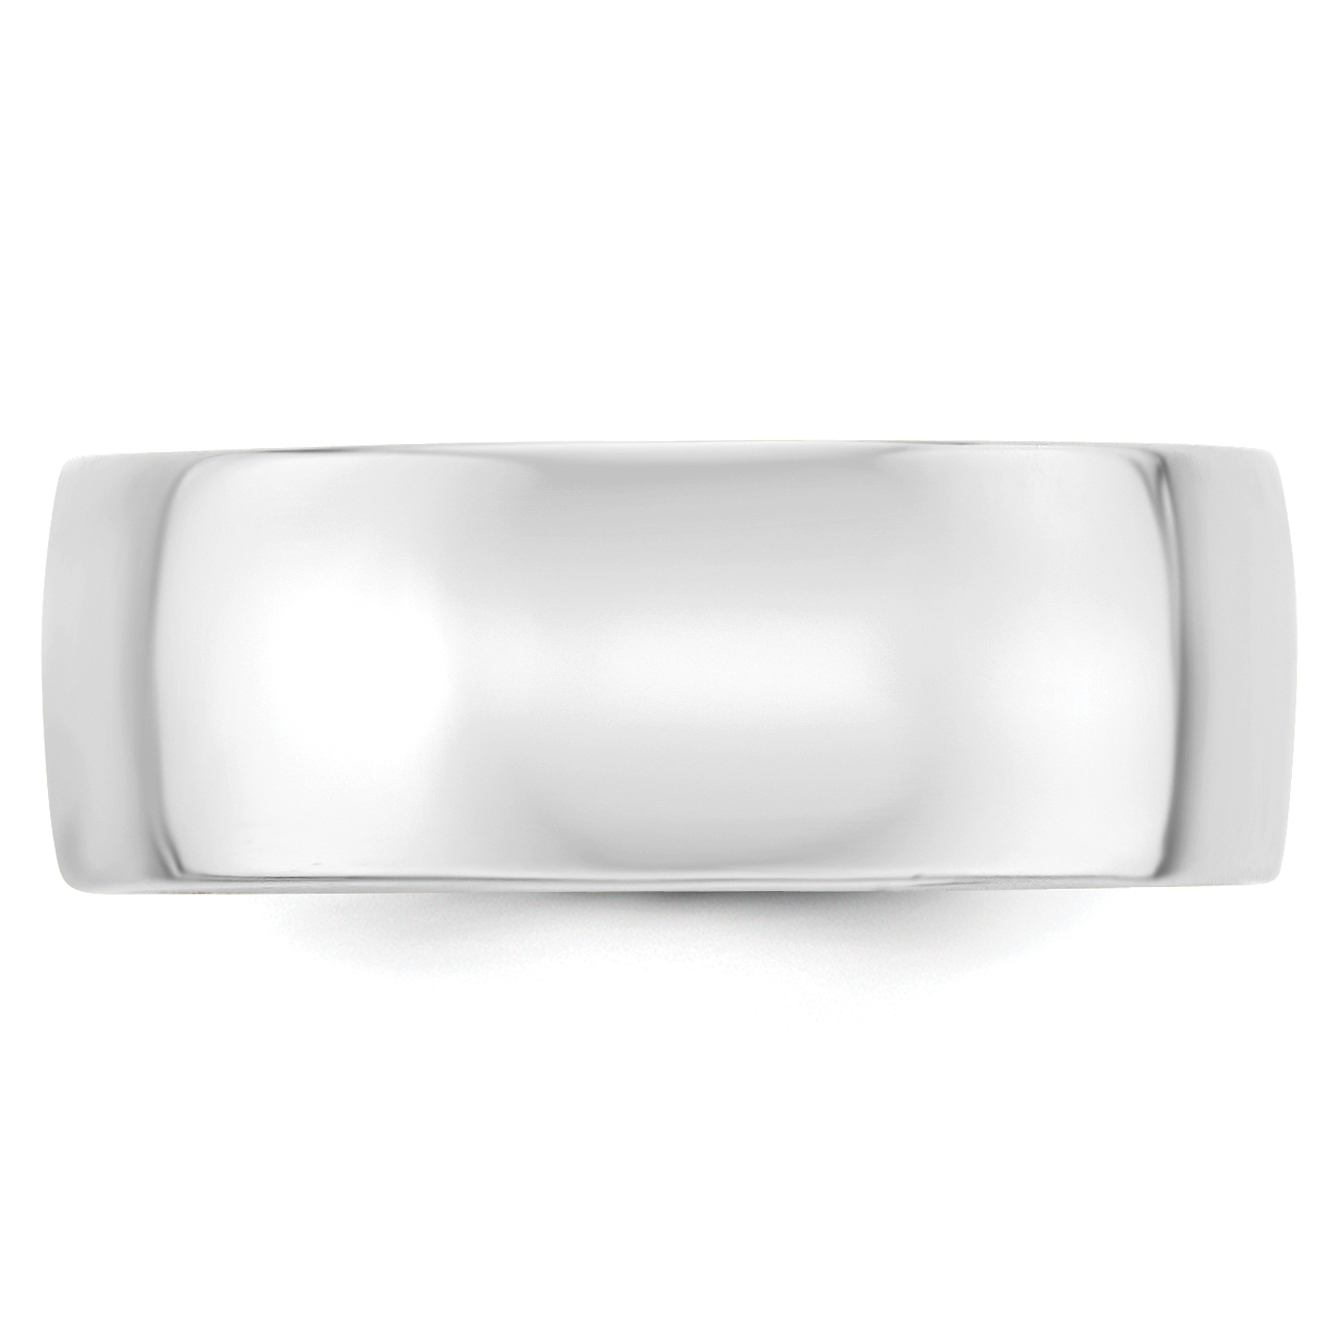 10K White Gold 8mm Light Weight Comfort Fit Band Size 5.5 - image 2 de 3